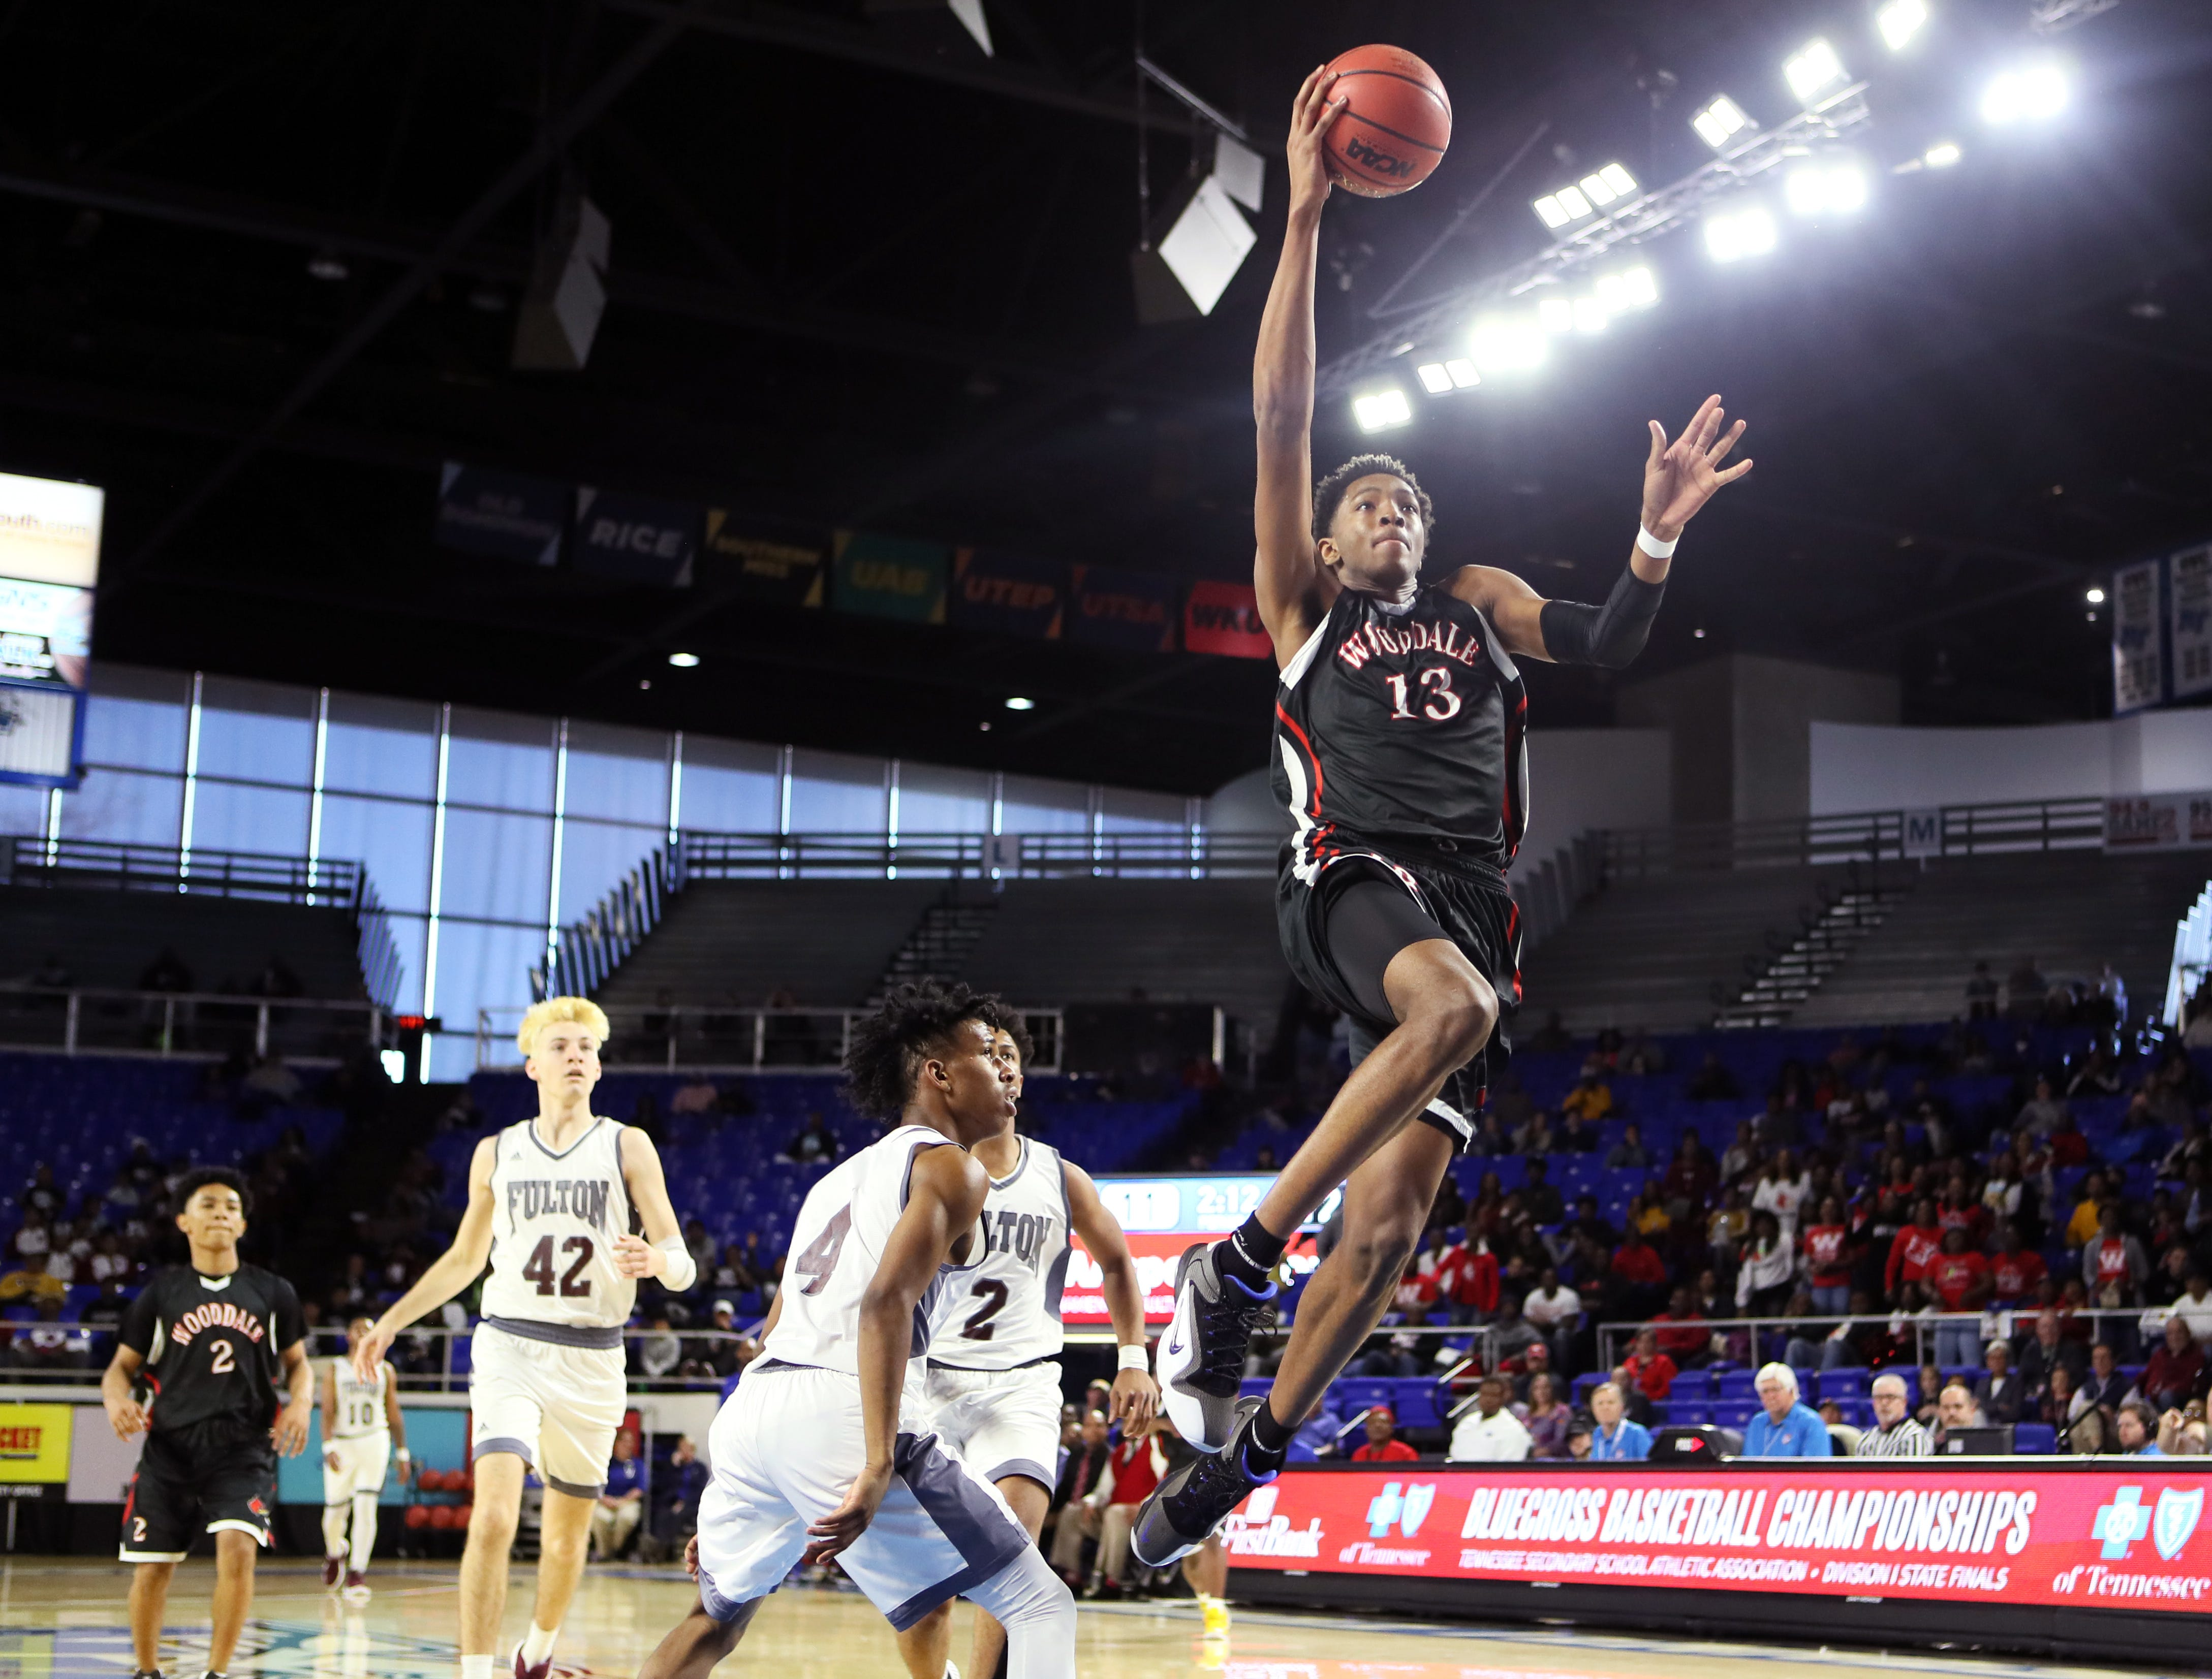 Wooddale's Chandler Lawson lays the ball up on a fast break against Fulton during the Class AA boys basketball state championship game at the Murphy Center in Murfreesboro, Tenn. on Saturday, March 16, 2019.